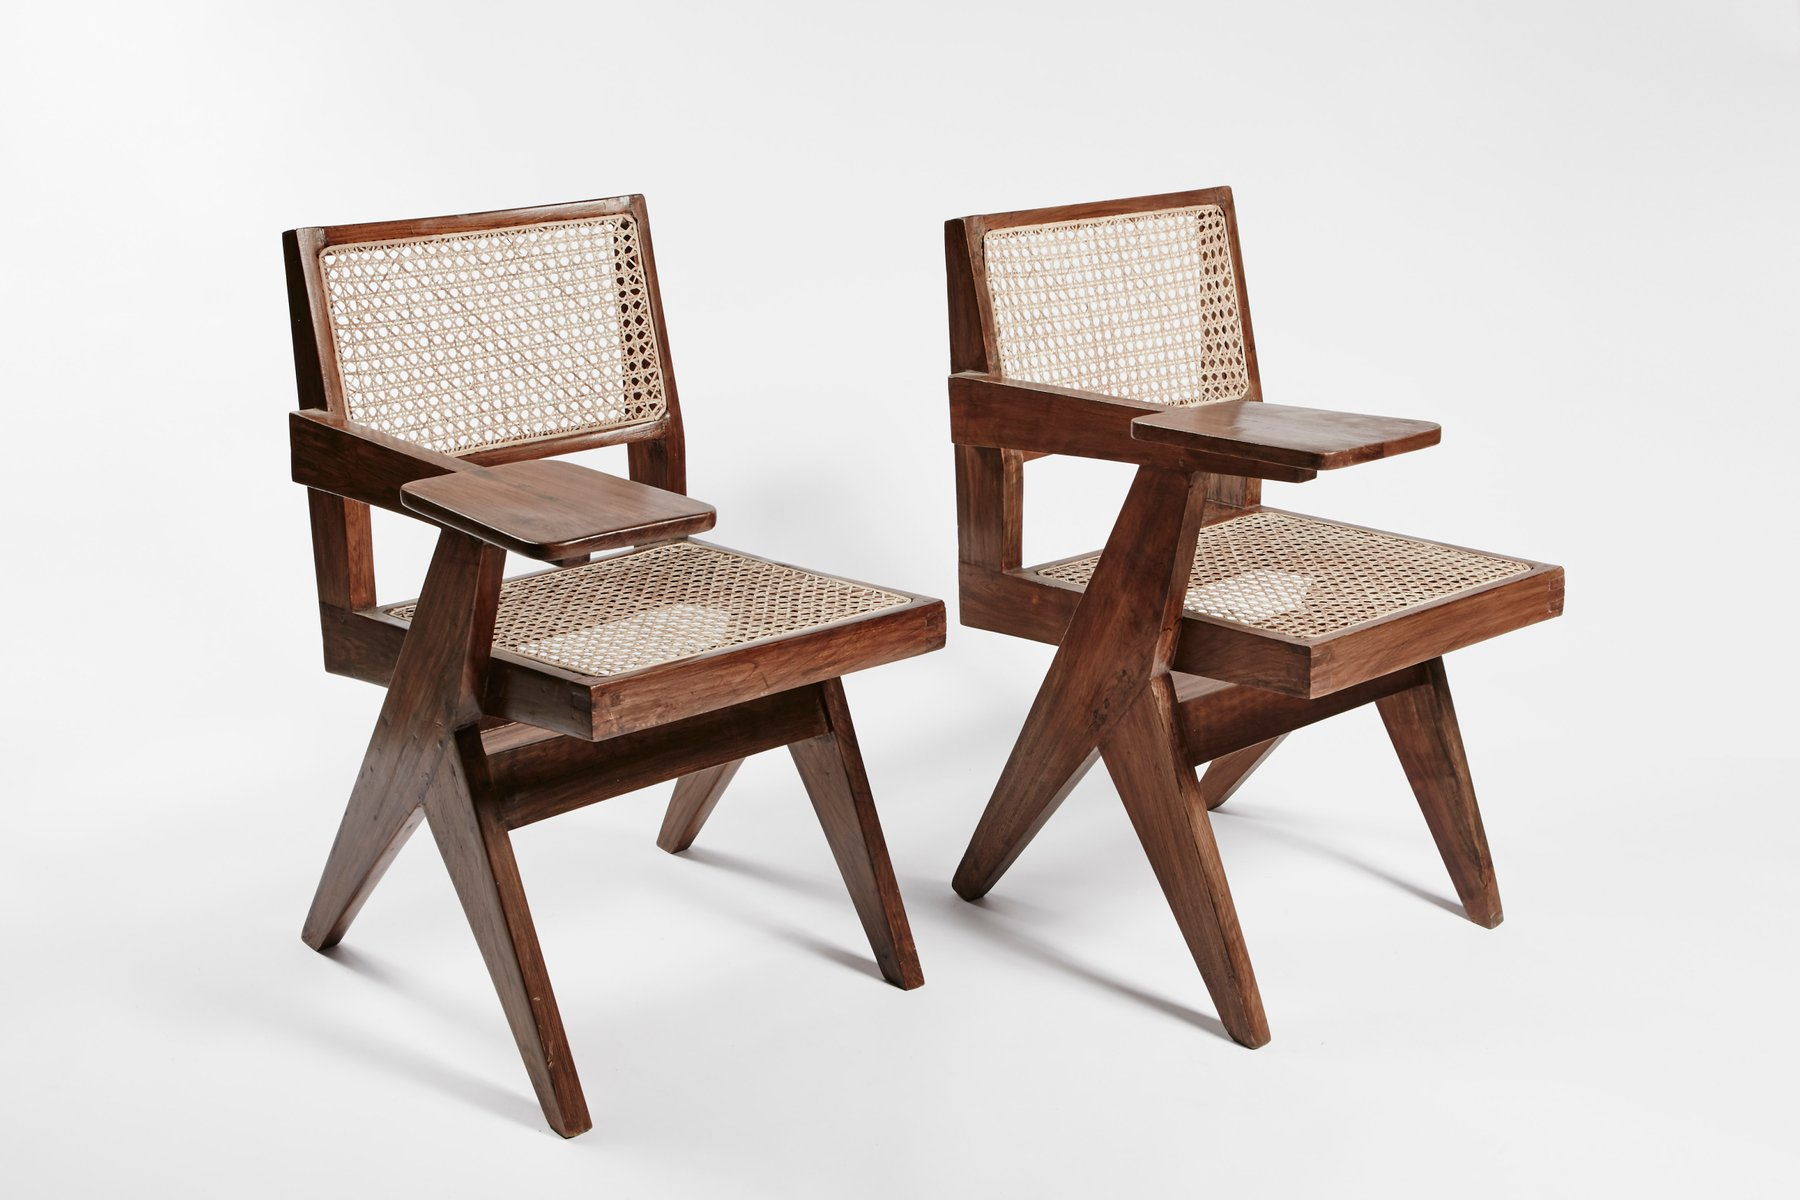 Teak and Wicker Desk Chairs by Pierre Jeanneret Set of 2 for sale